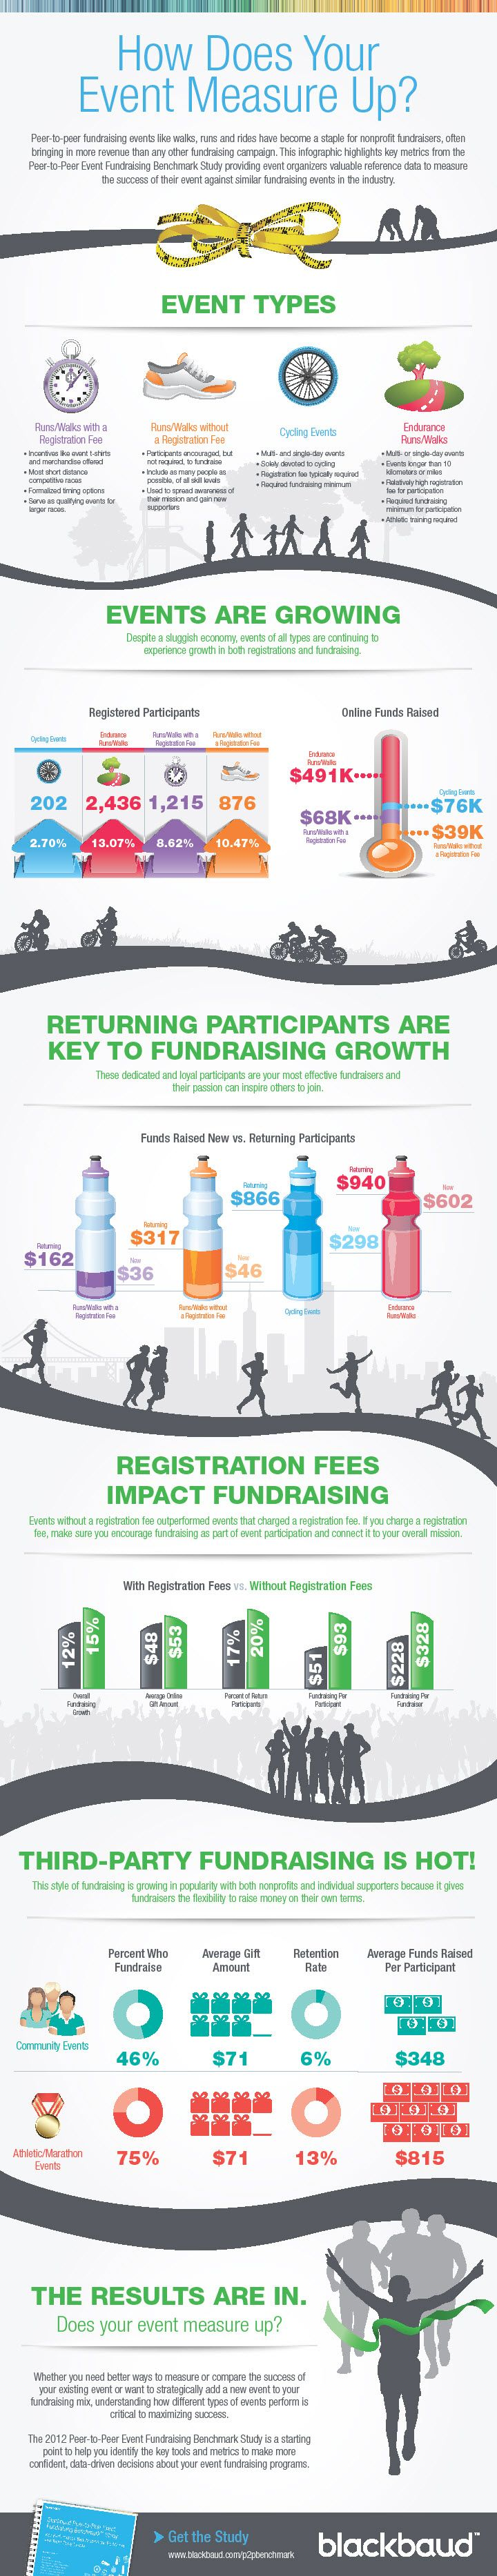 fundraising infographic : How Does Your Fundraising Event Measure Up? #fundraising #infographic…